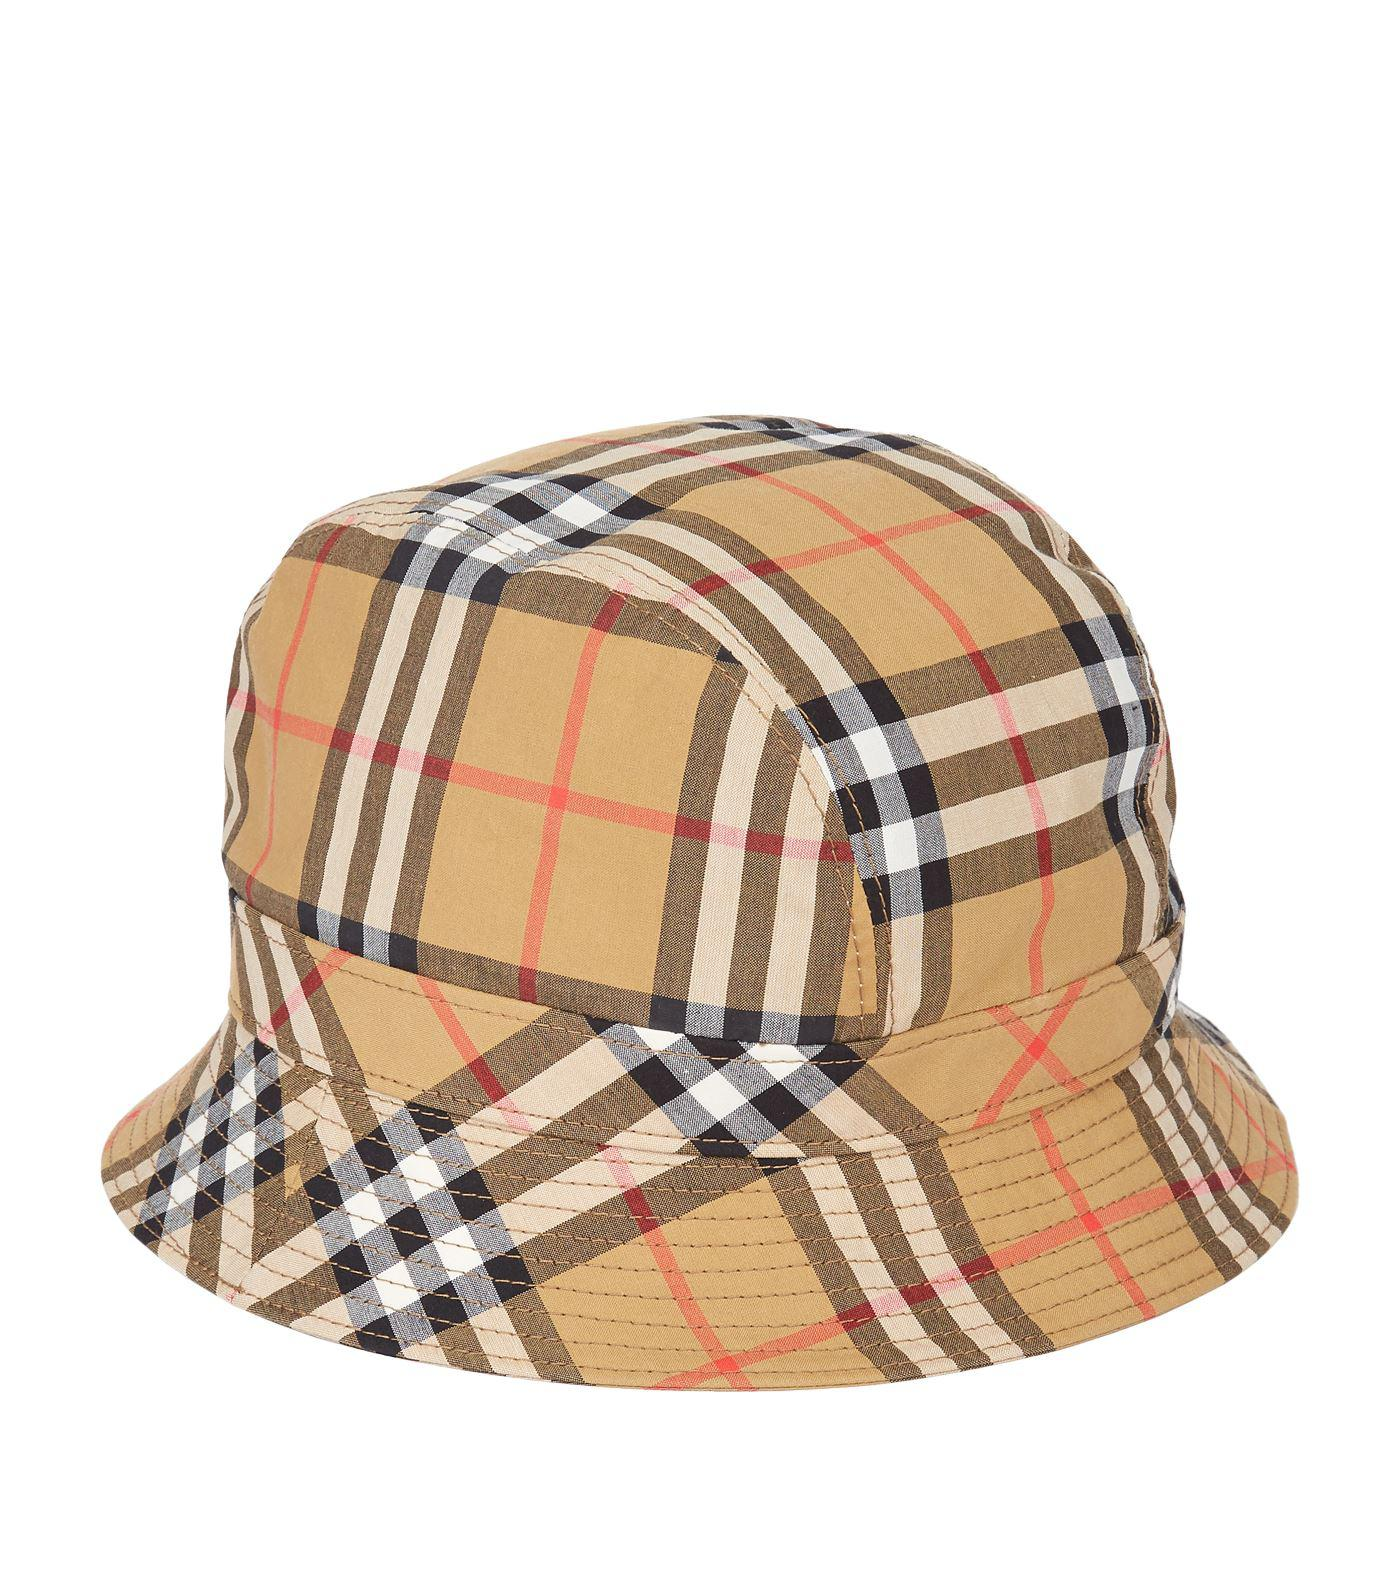 08c57717b65 Burberry Vintage Check Bucket Hat in Yellow - Lyst